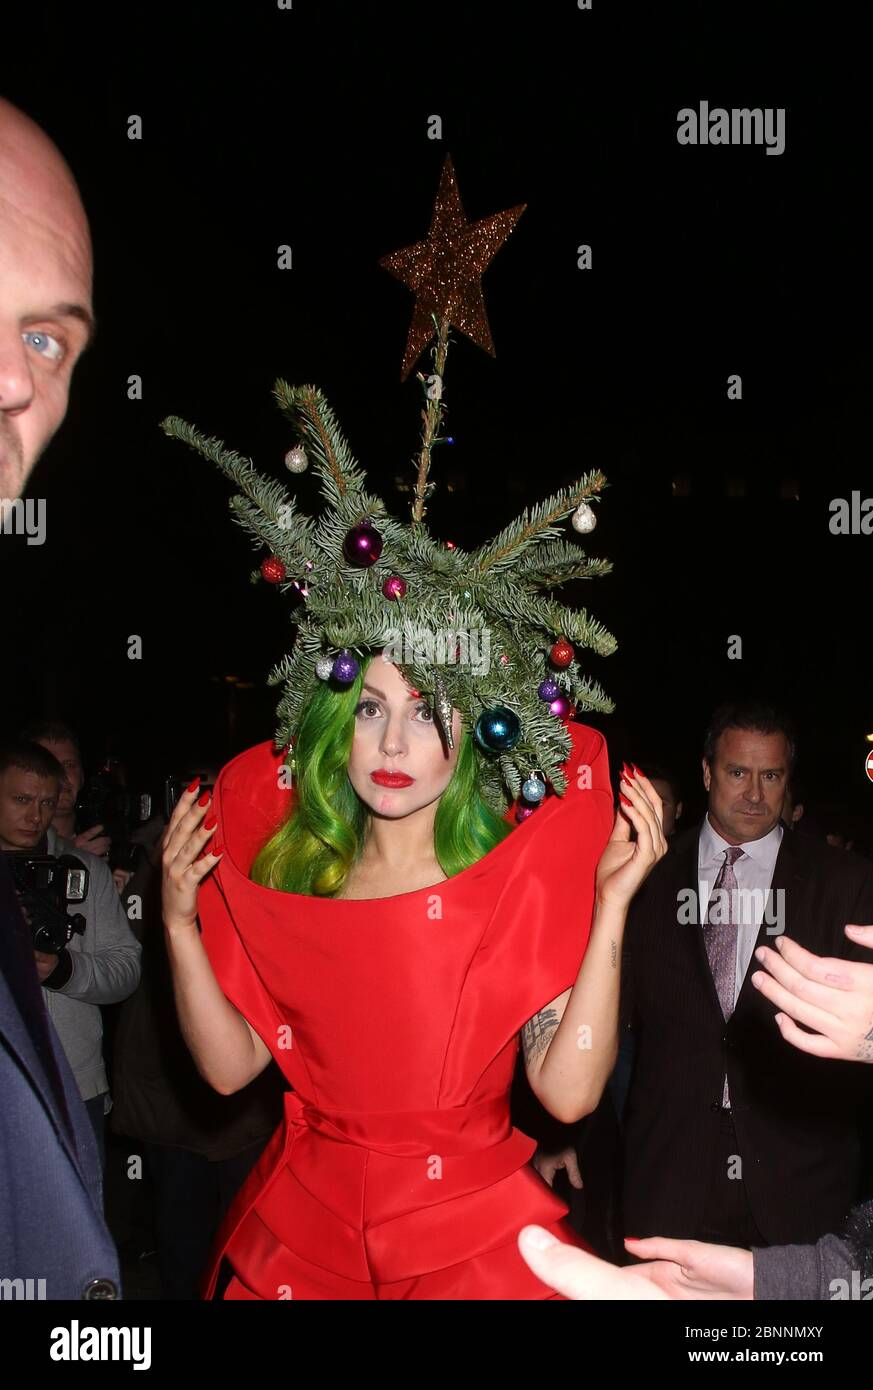 Lady Gaga At The Langham Hotel London Wearing A Christmas Tree On Her Head Stock Photo Alamy